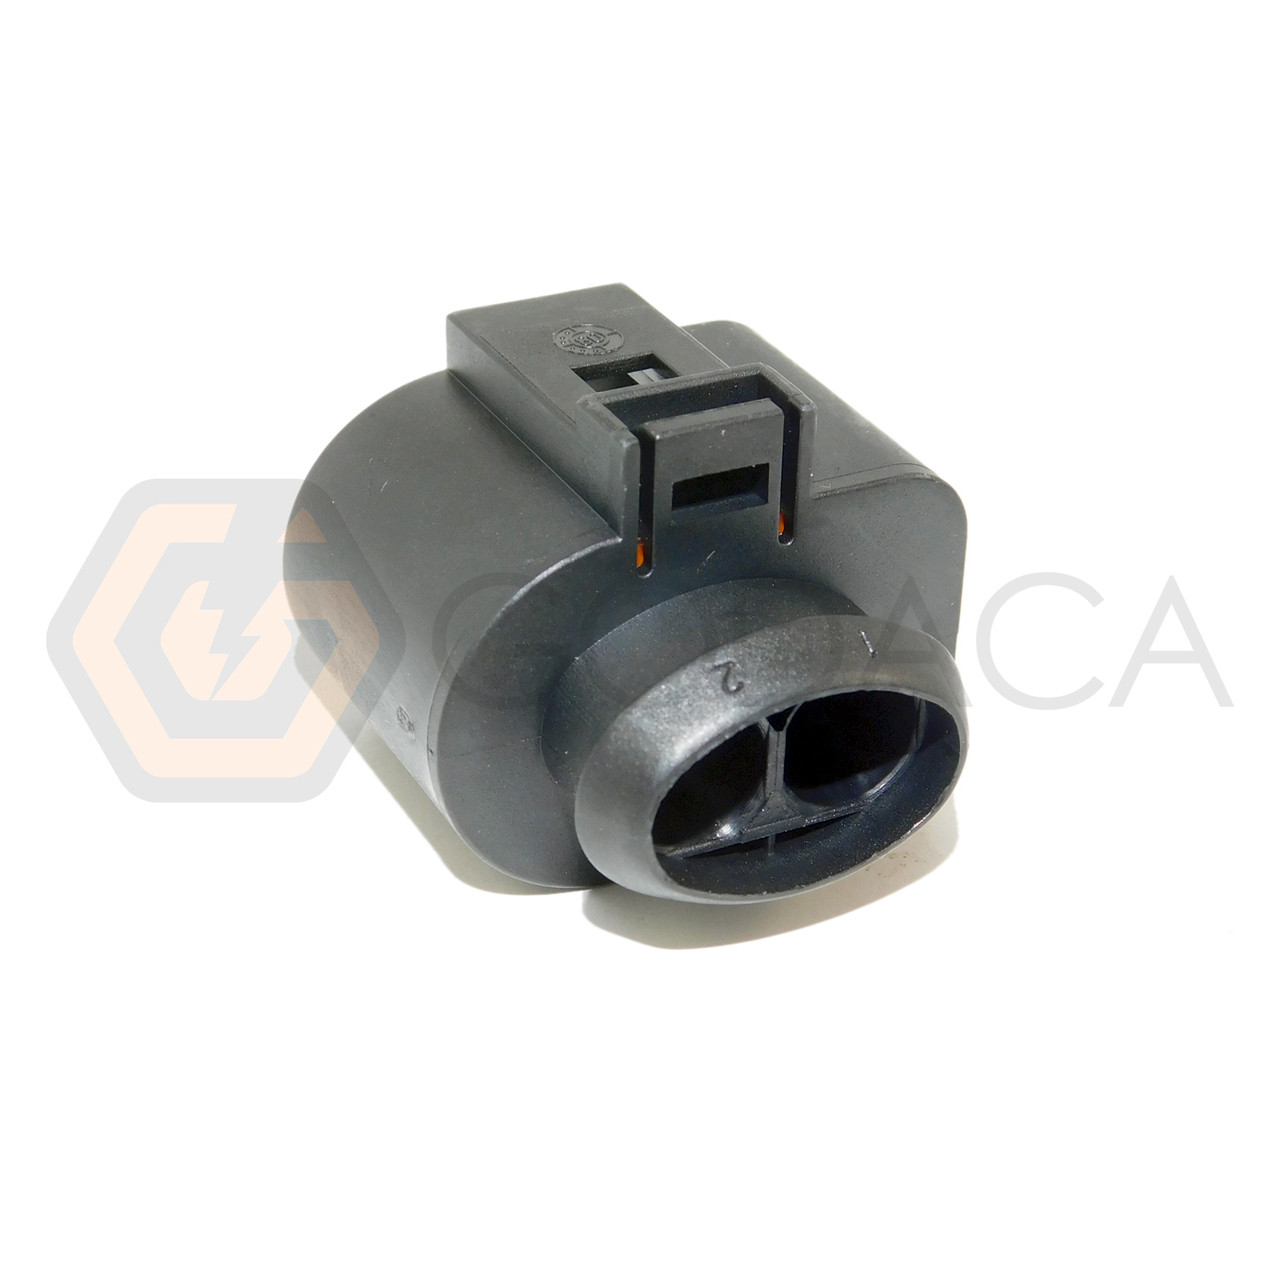 1x Connector 2-way 2 pin for secondary air pump Audi VW 1J0 973 752